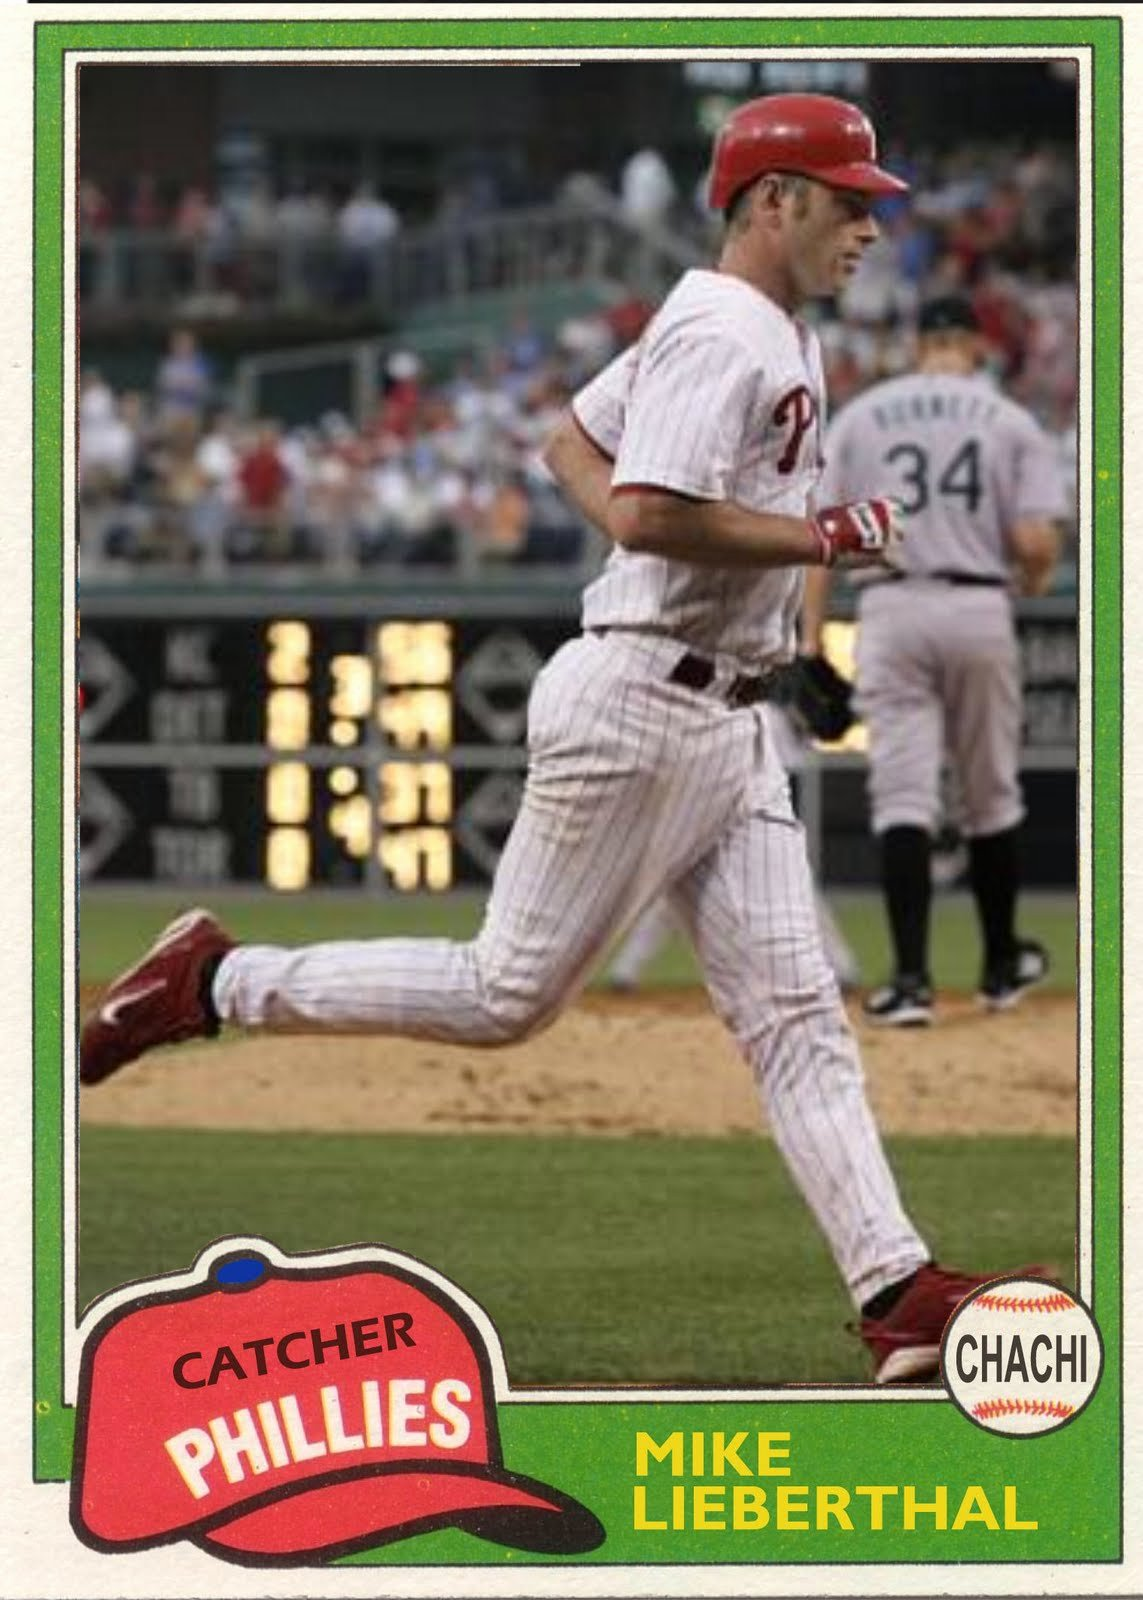 Baseball Card Size Template Fresh the Phillies Room How to Make A Baseball Card